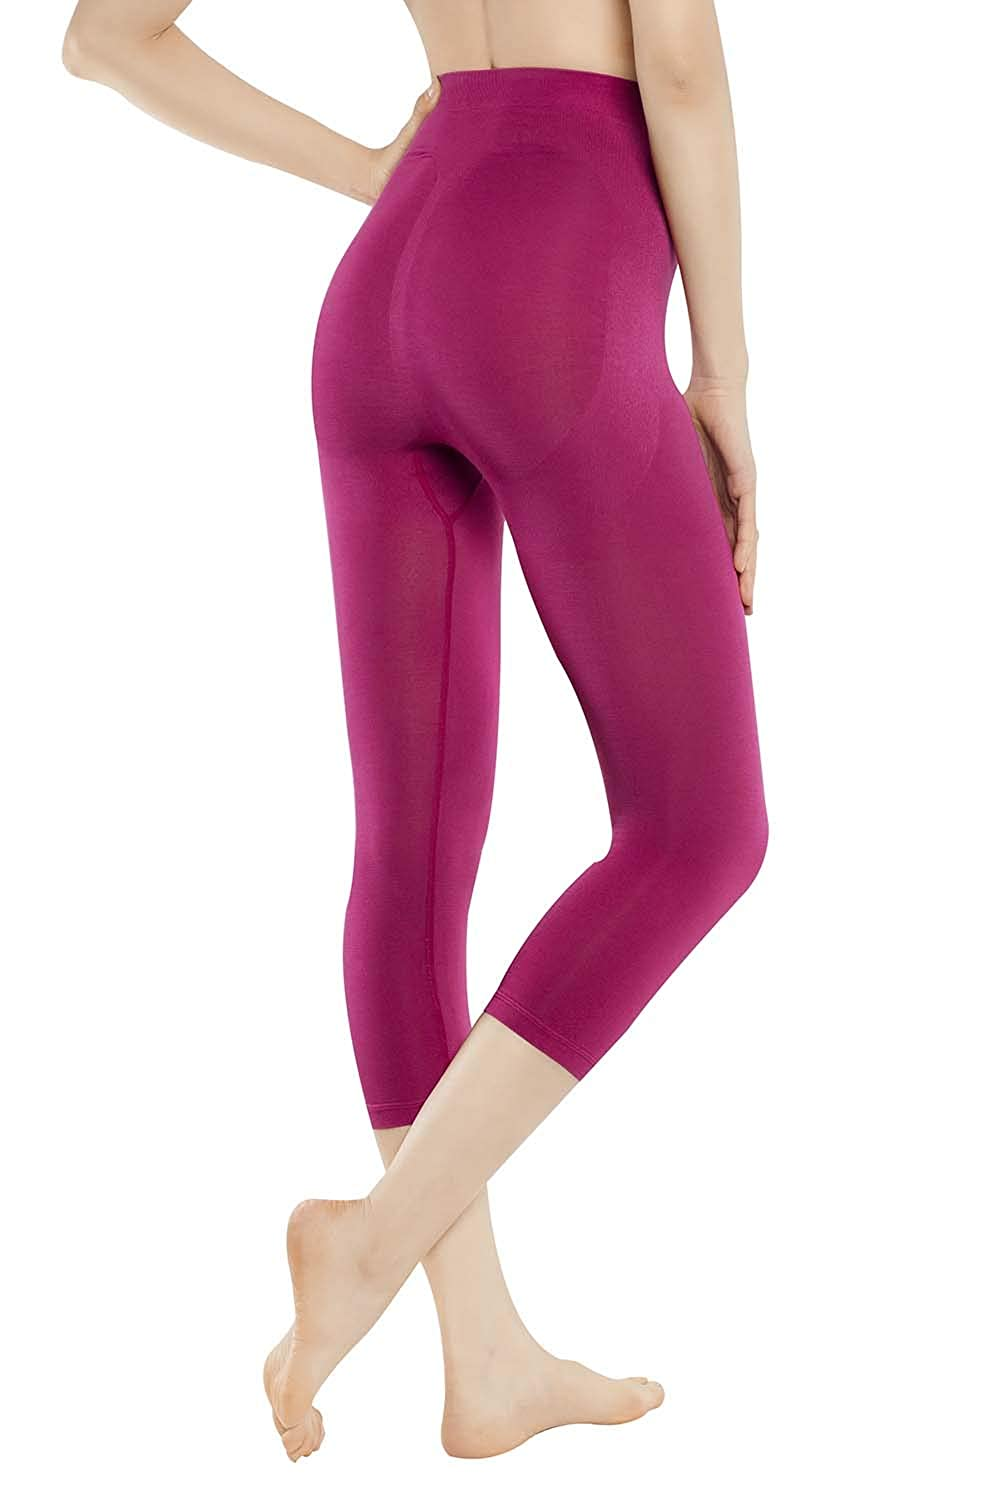 +MD Leggings Vita Alta massaggianti Fuseaux Dimagranti Anti Cellulite Pantaloncino Snellente